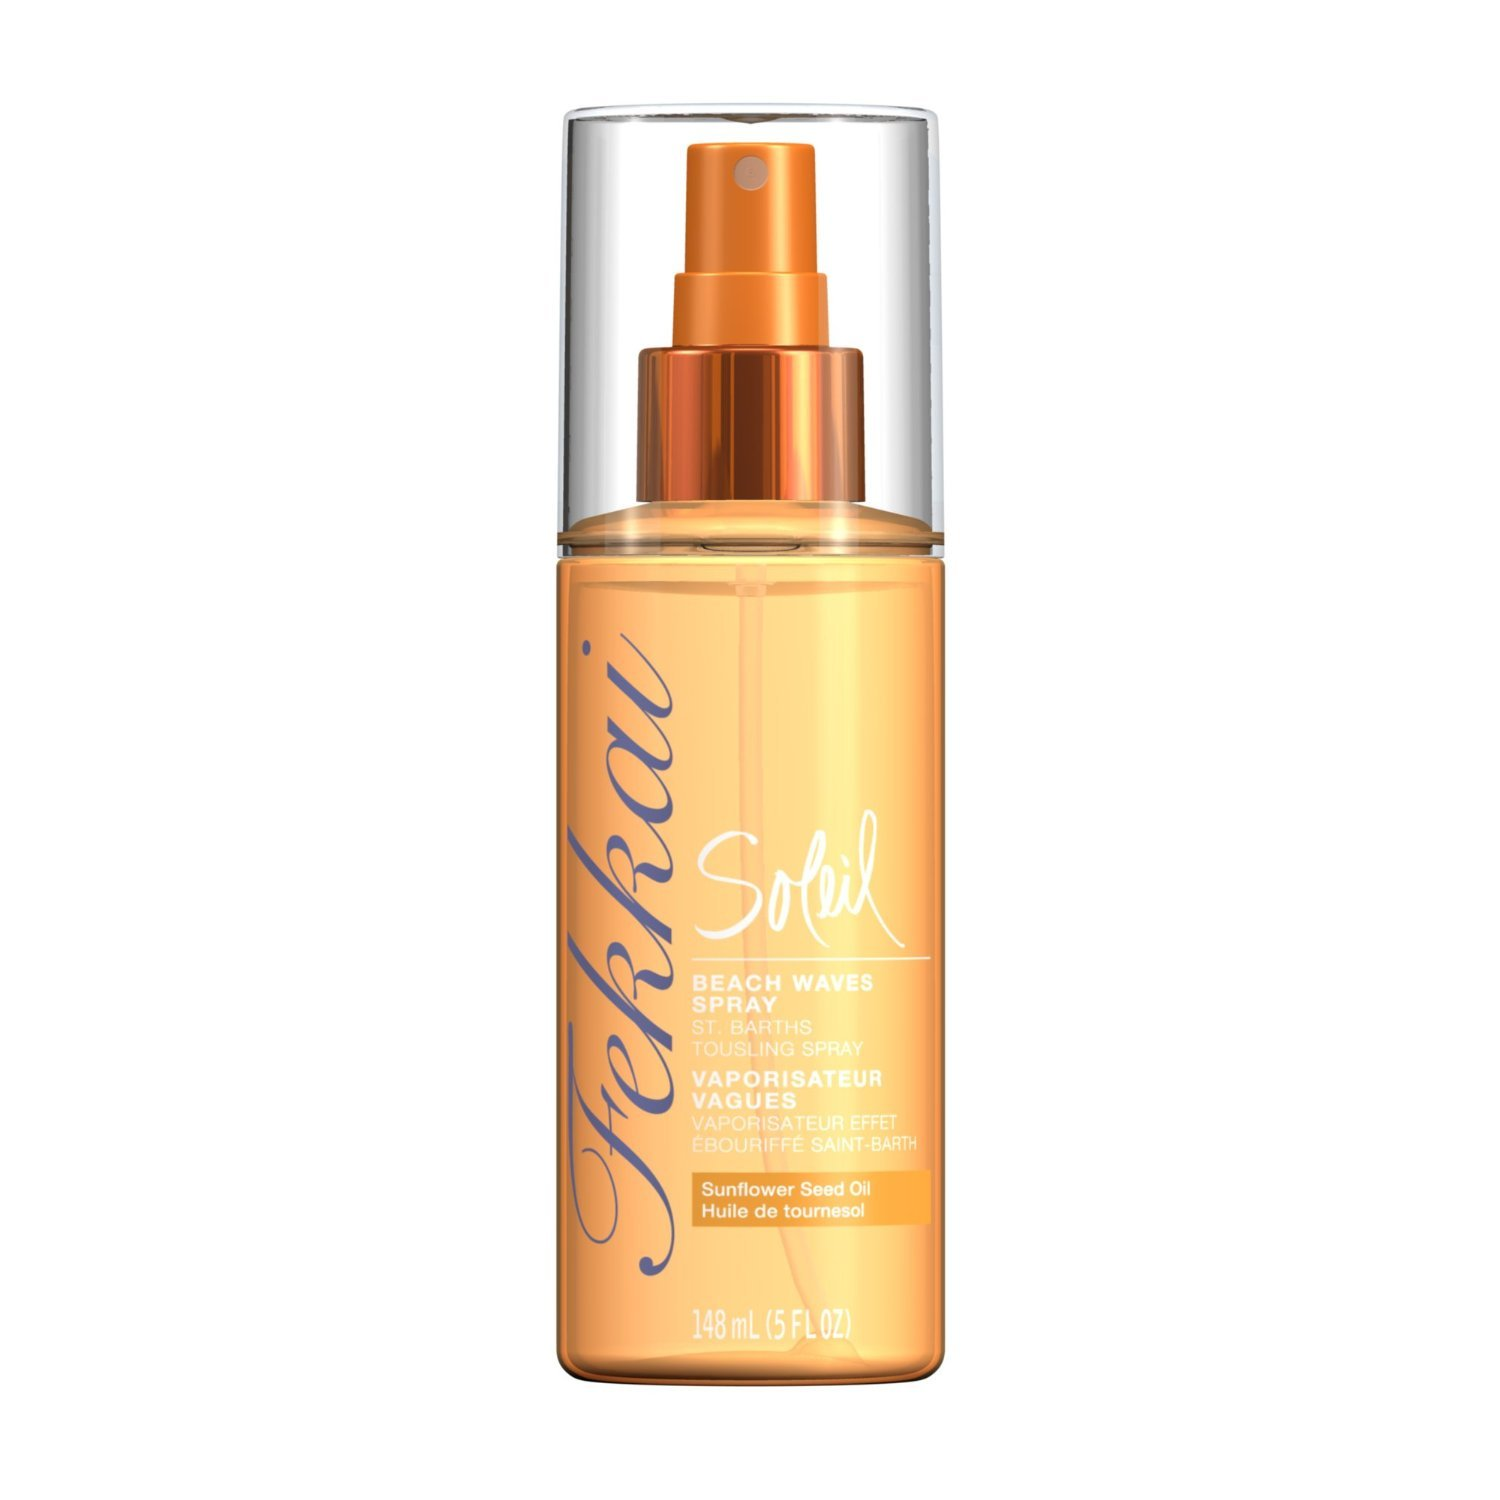 Fekkai Soleil Beach Waves Spray - 5 Oz. Frederic Fekkai 730870201329